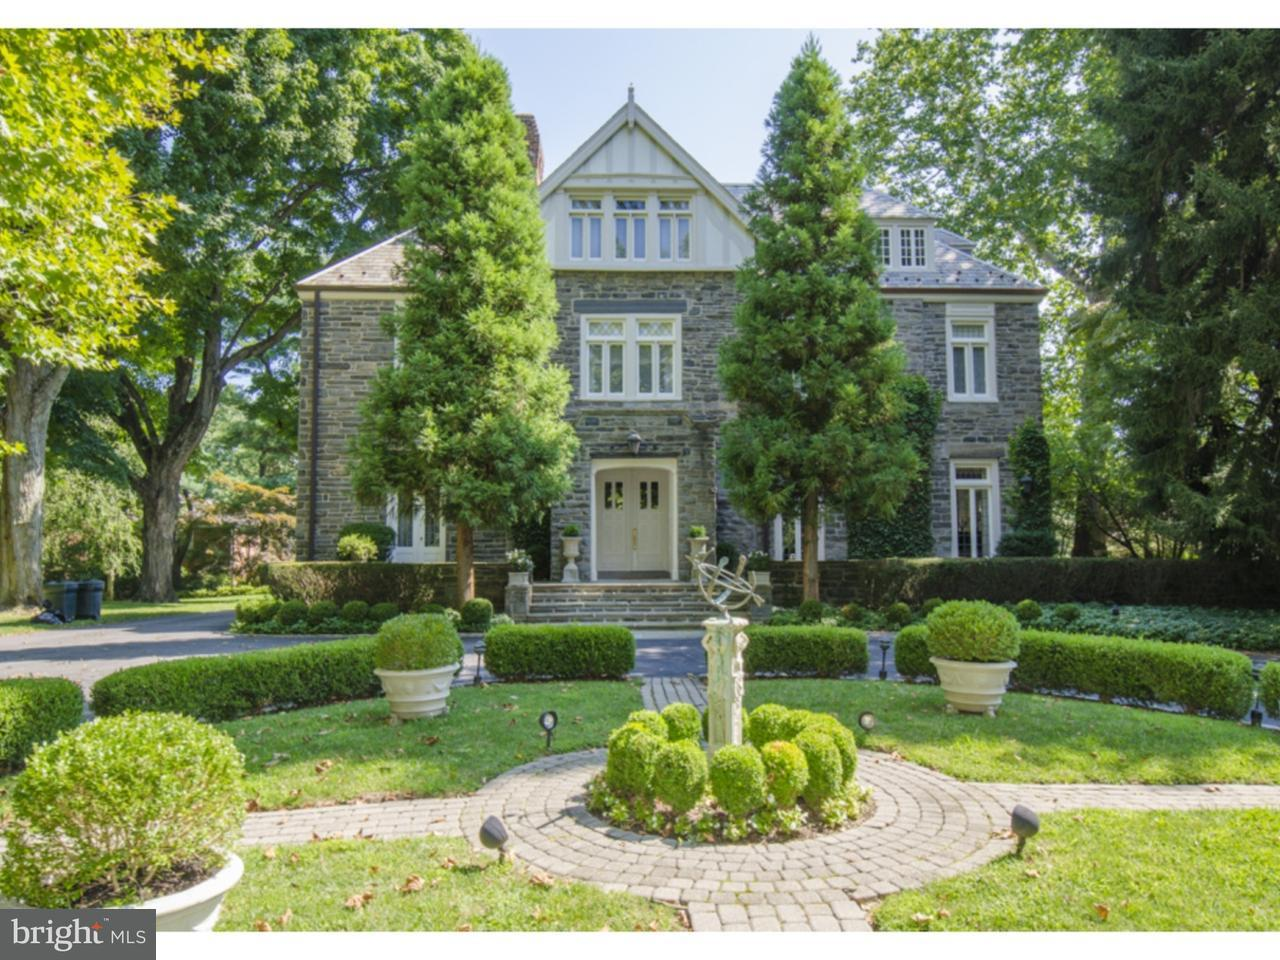 Single Family Home for Sale at 511 WALDRON PARK Drive Haverford, Pennsylvania 19041 United States